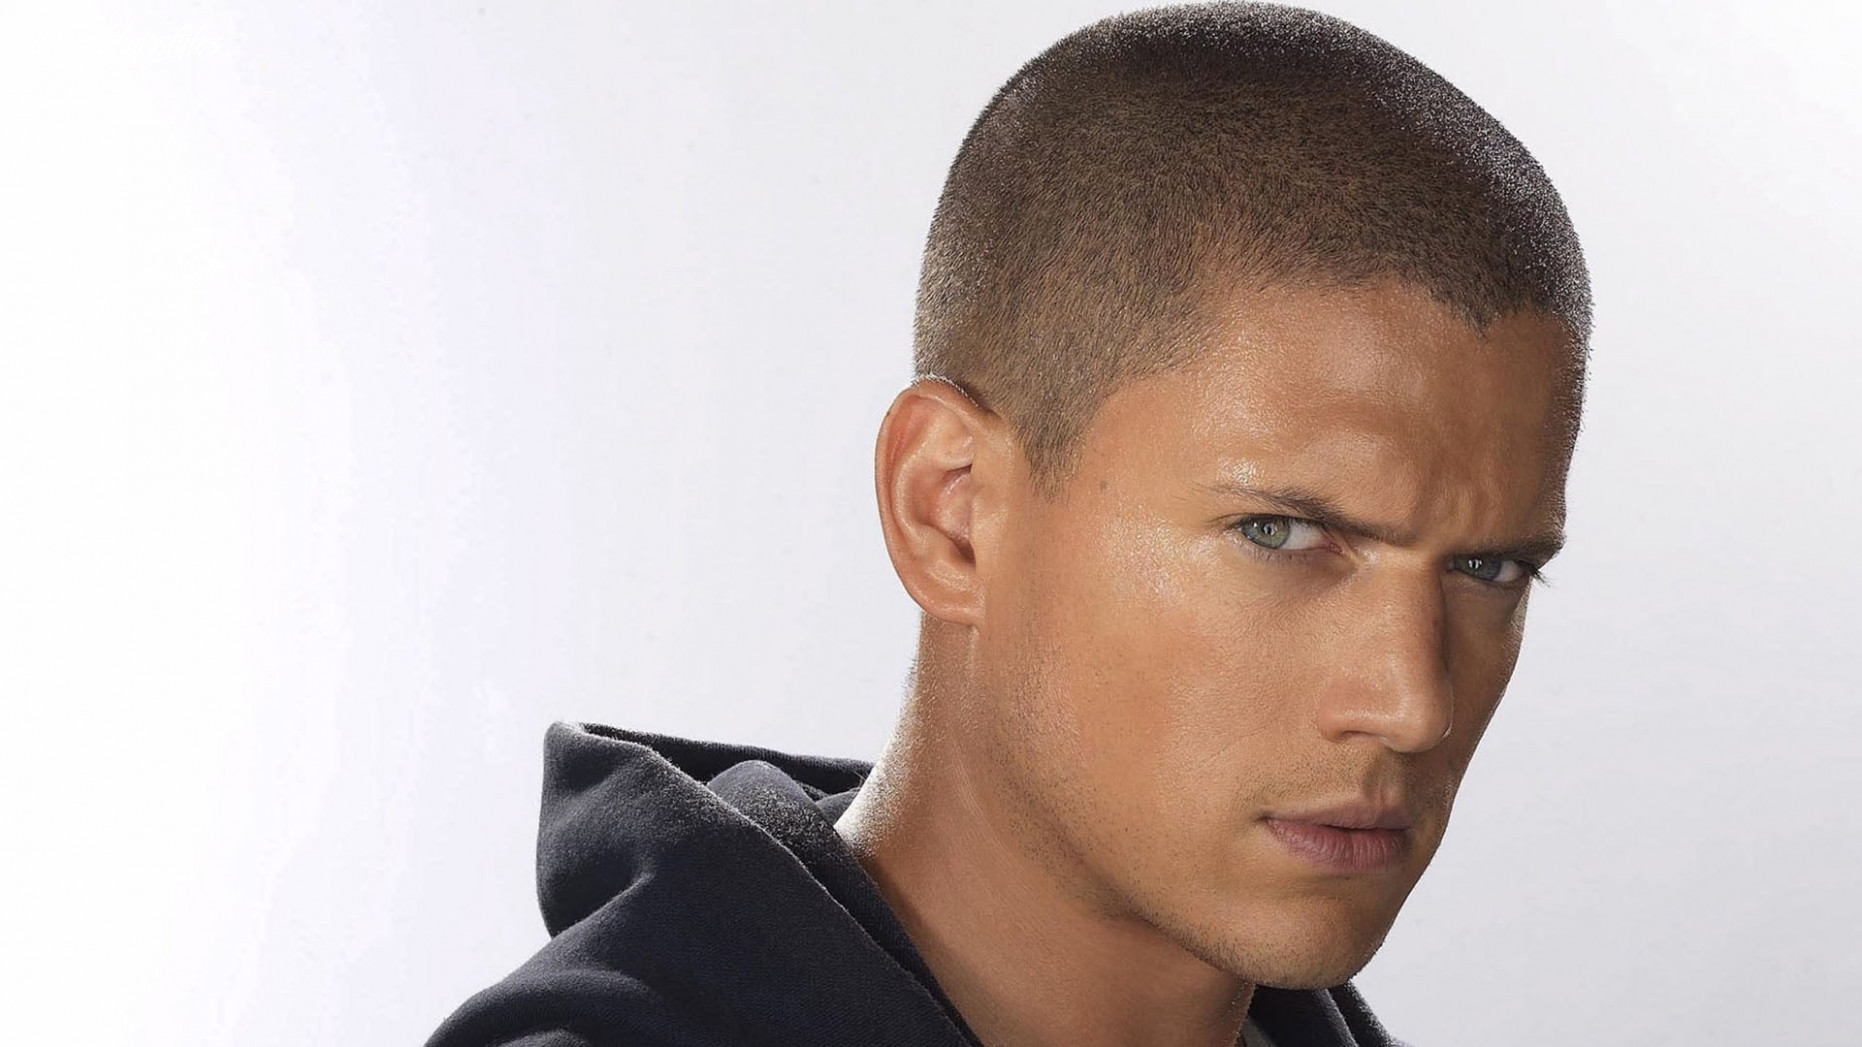 Buzz cut styles and tips for stylishly minimalist men buzz cut hairstyles